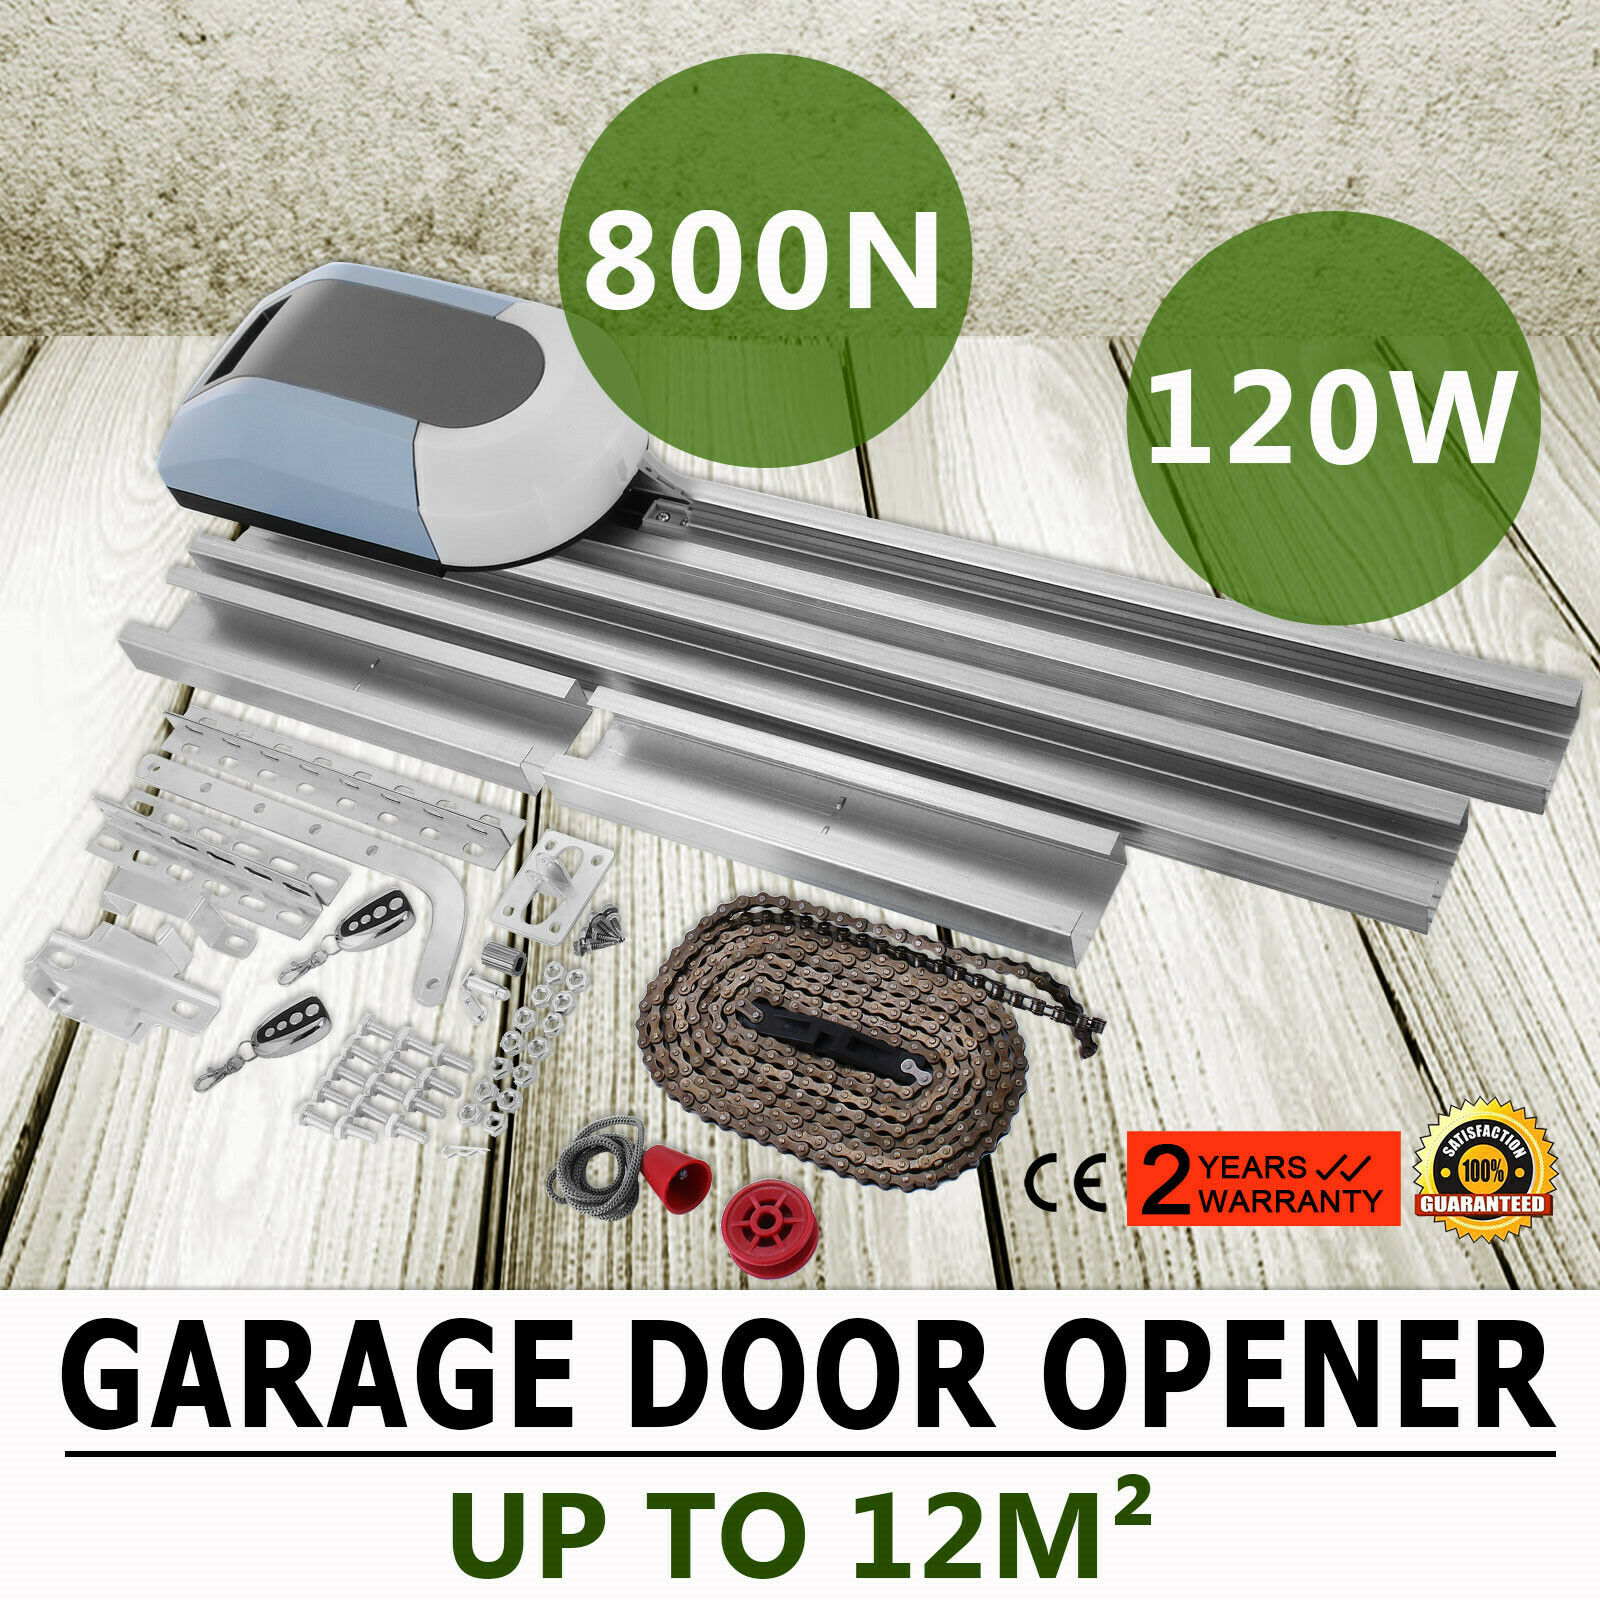 Garage Door Opener Garage Engine Automatic Operator Force 800N Advanced Technology 2 Remote Control